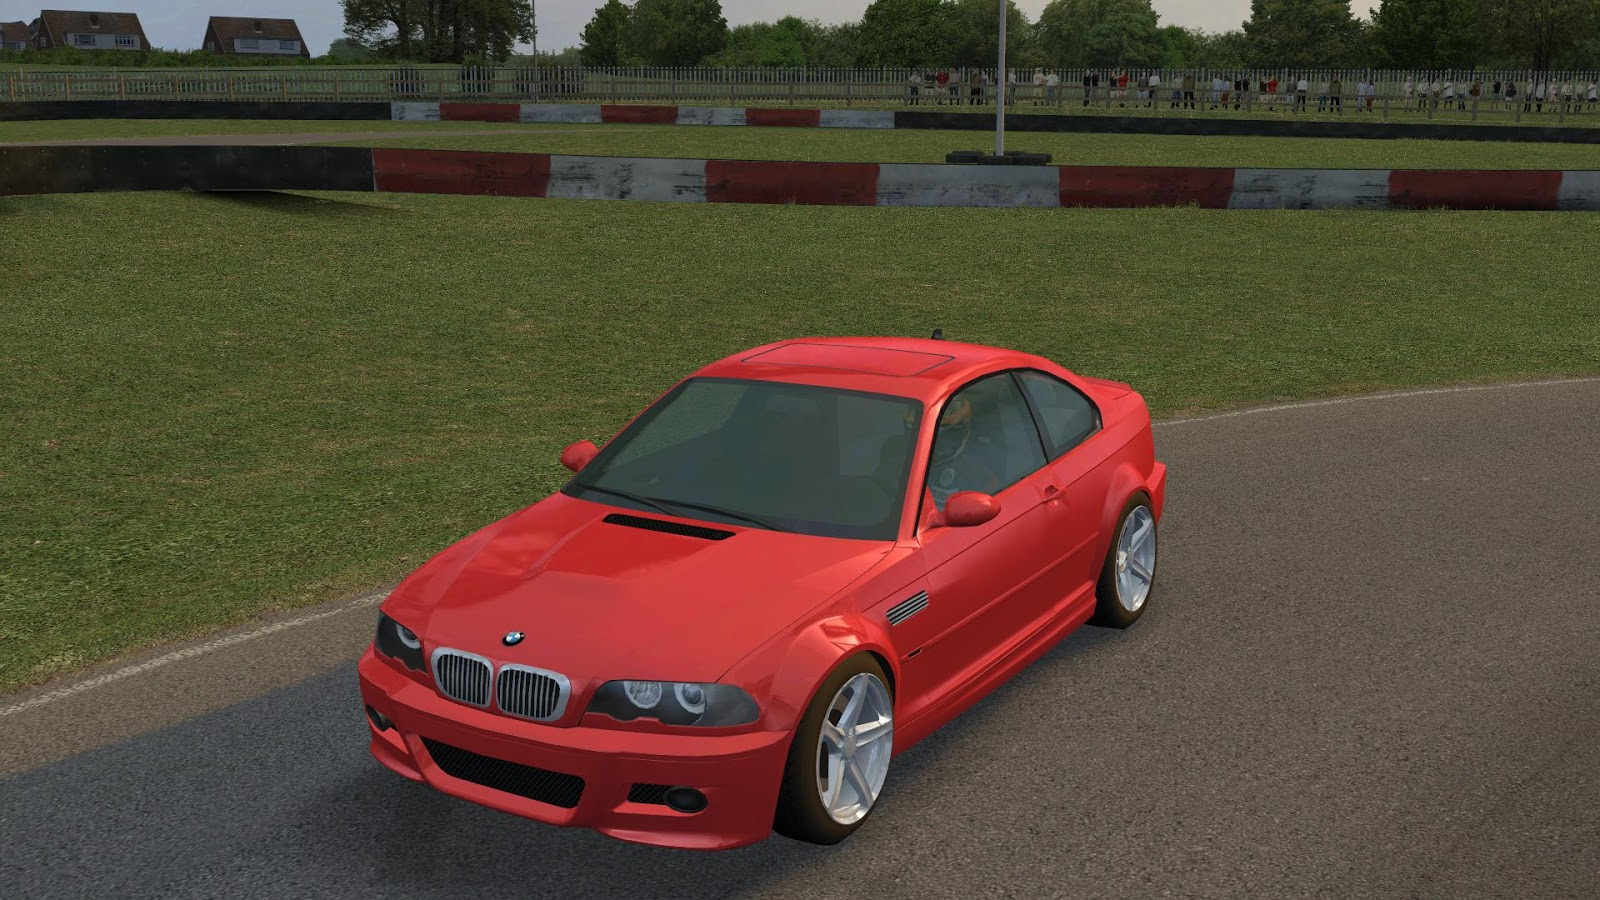 for coupe version mod facelift attachment click showthread image bmw mods name larger views